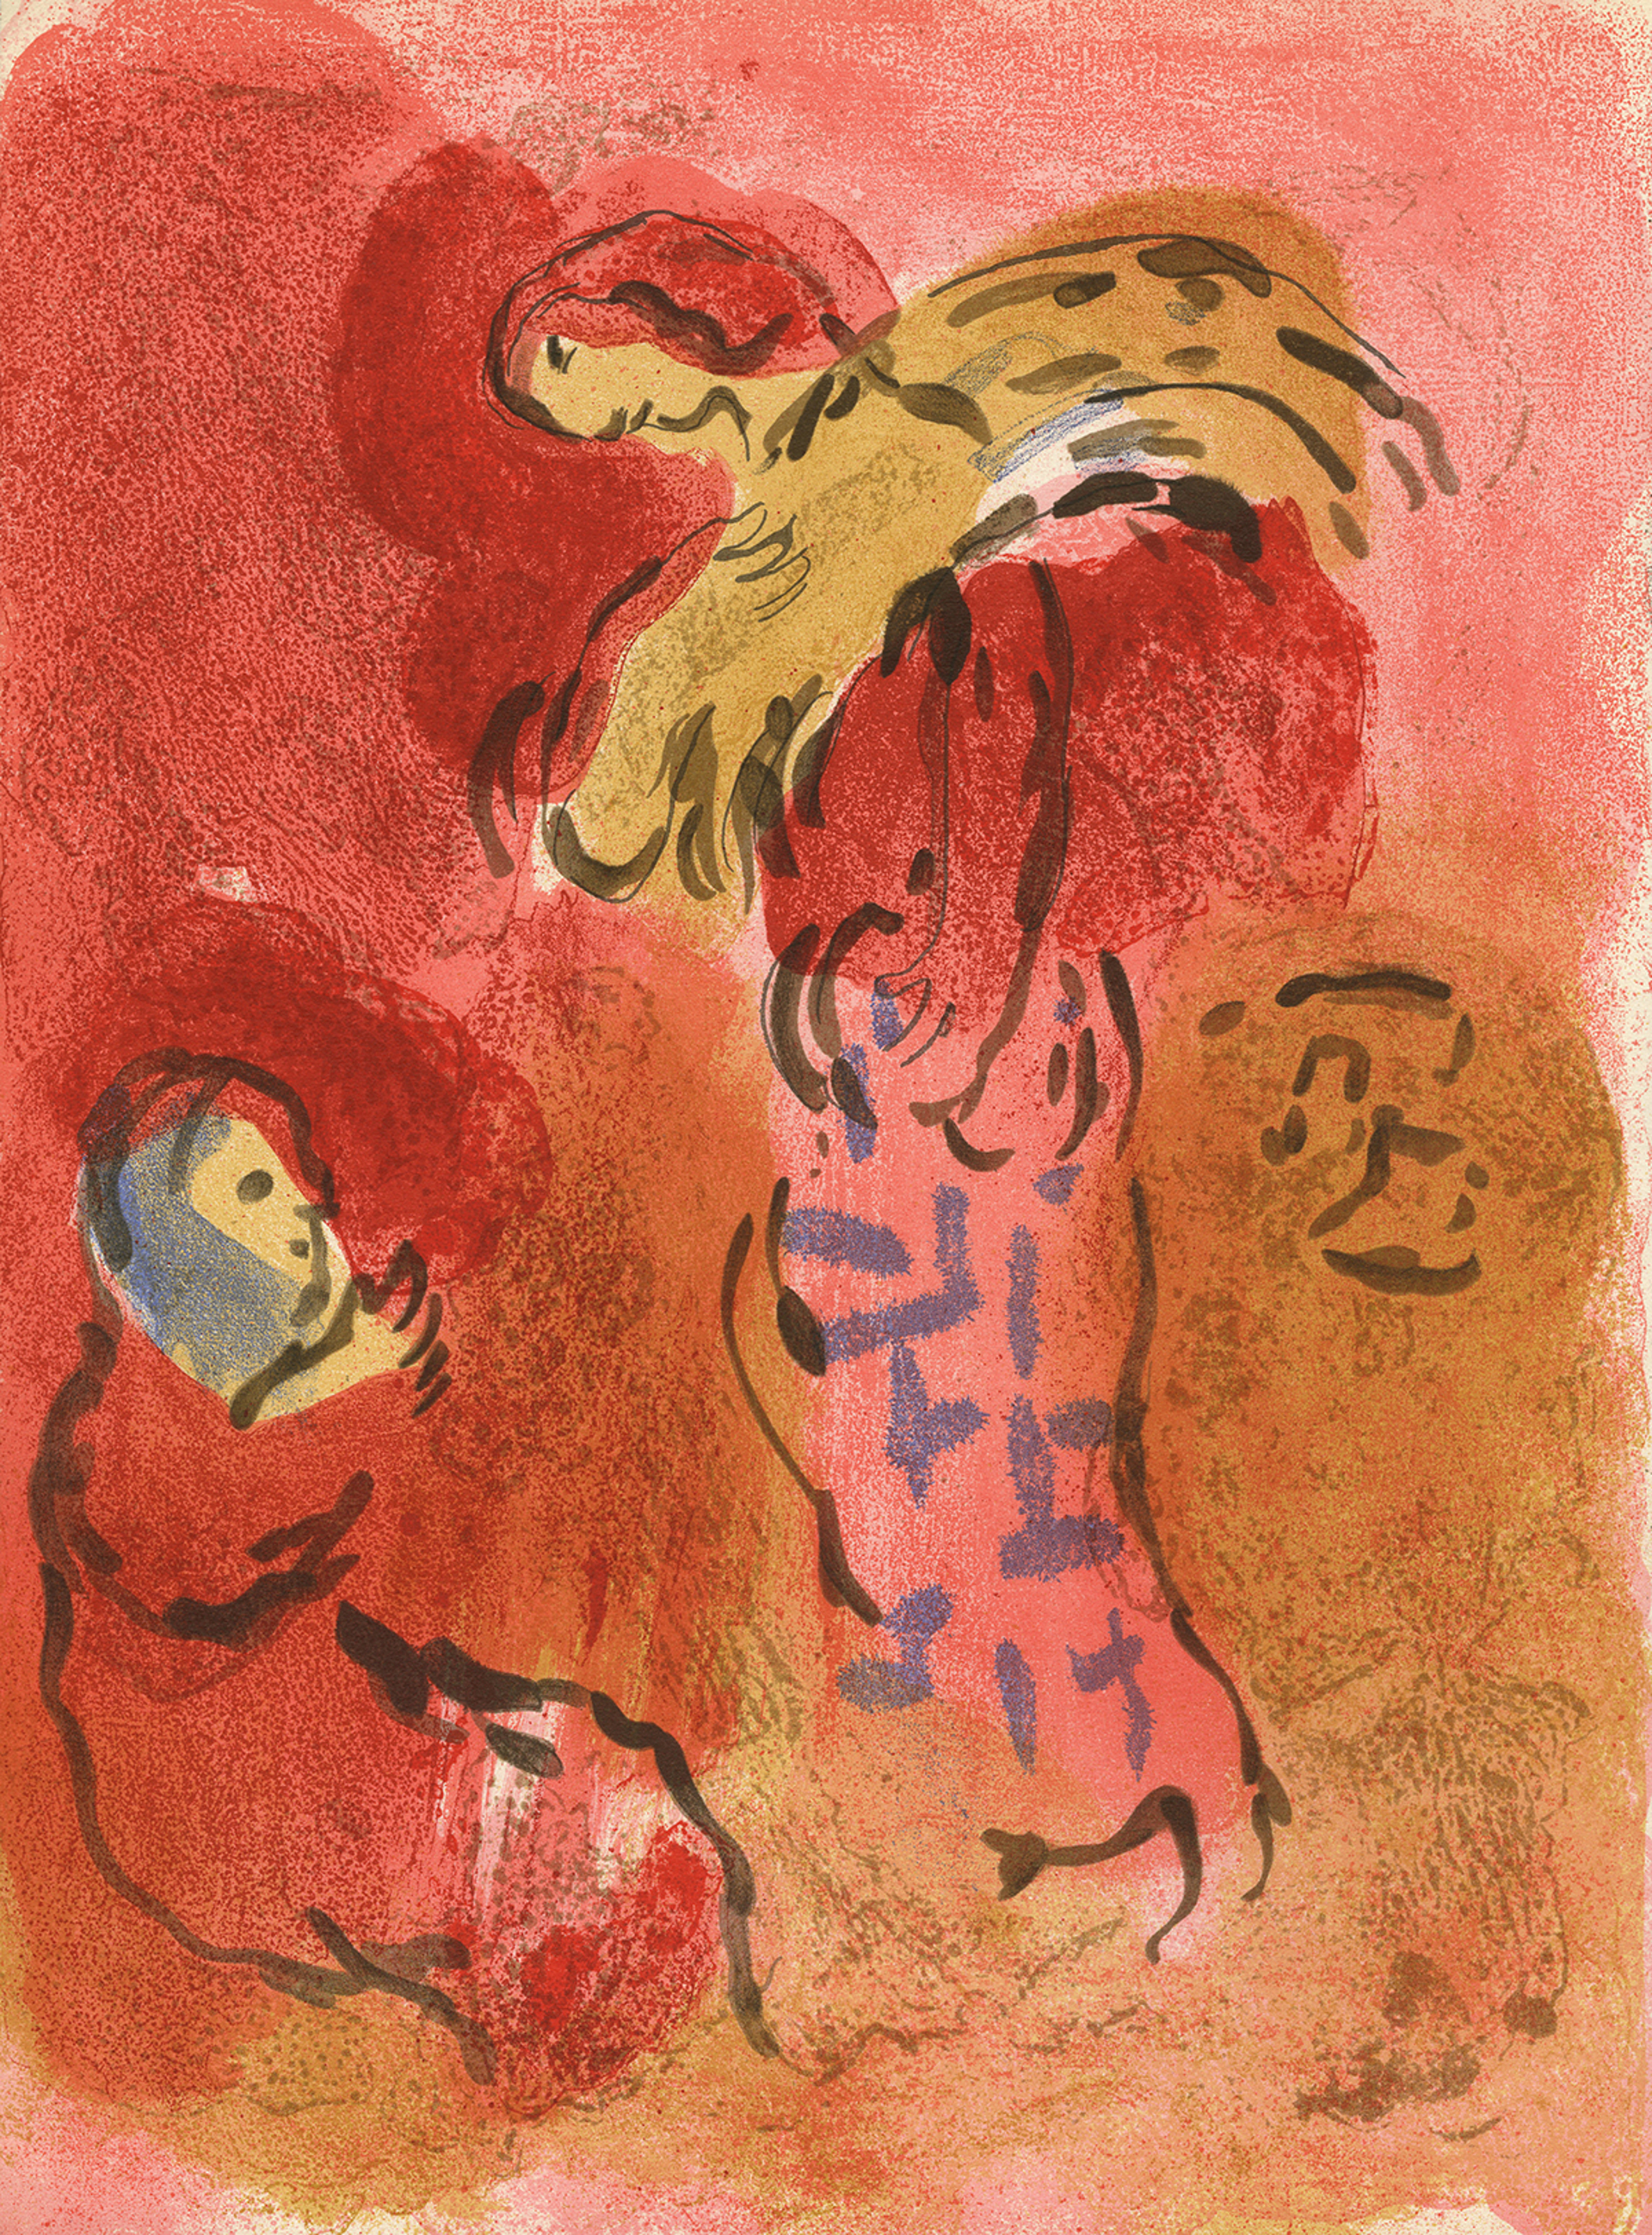 Ruth Glaneuse (Ruth Gleaning), M 246/269 by Marc Chagall